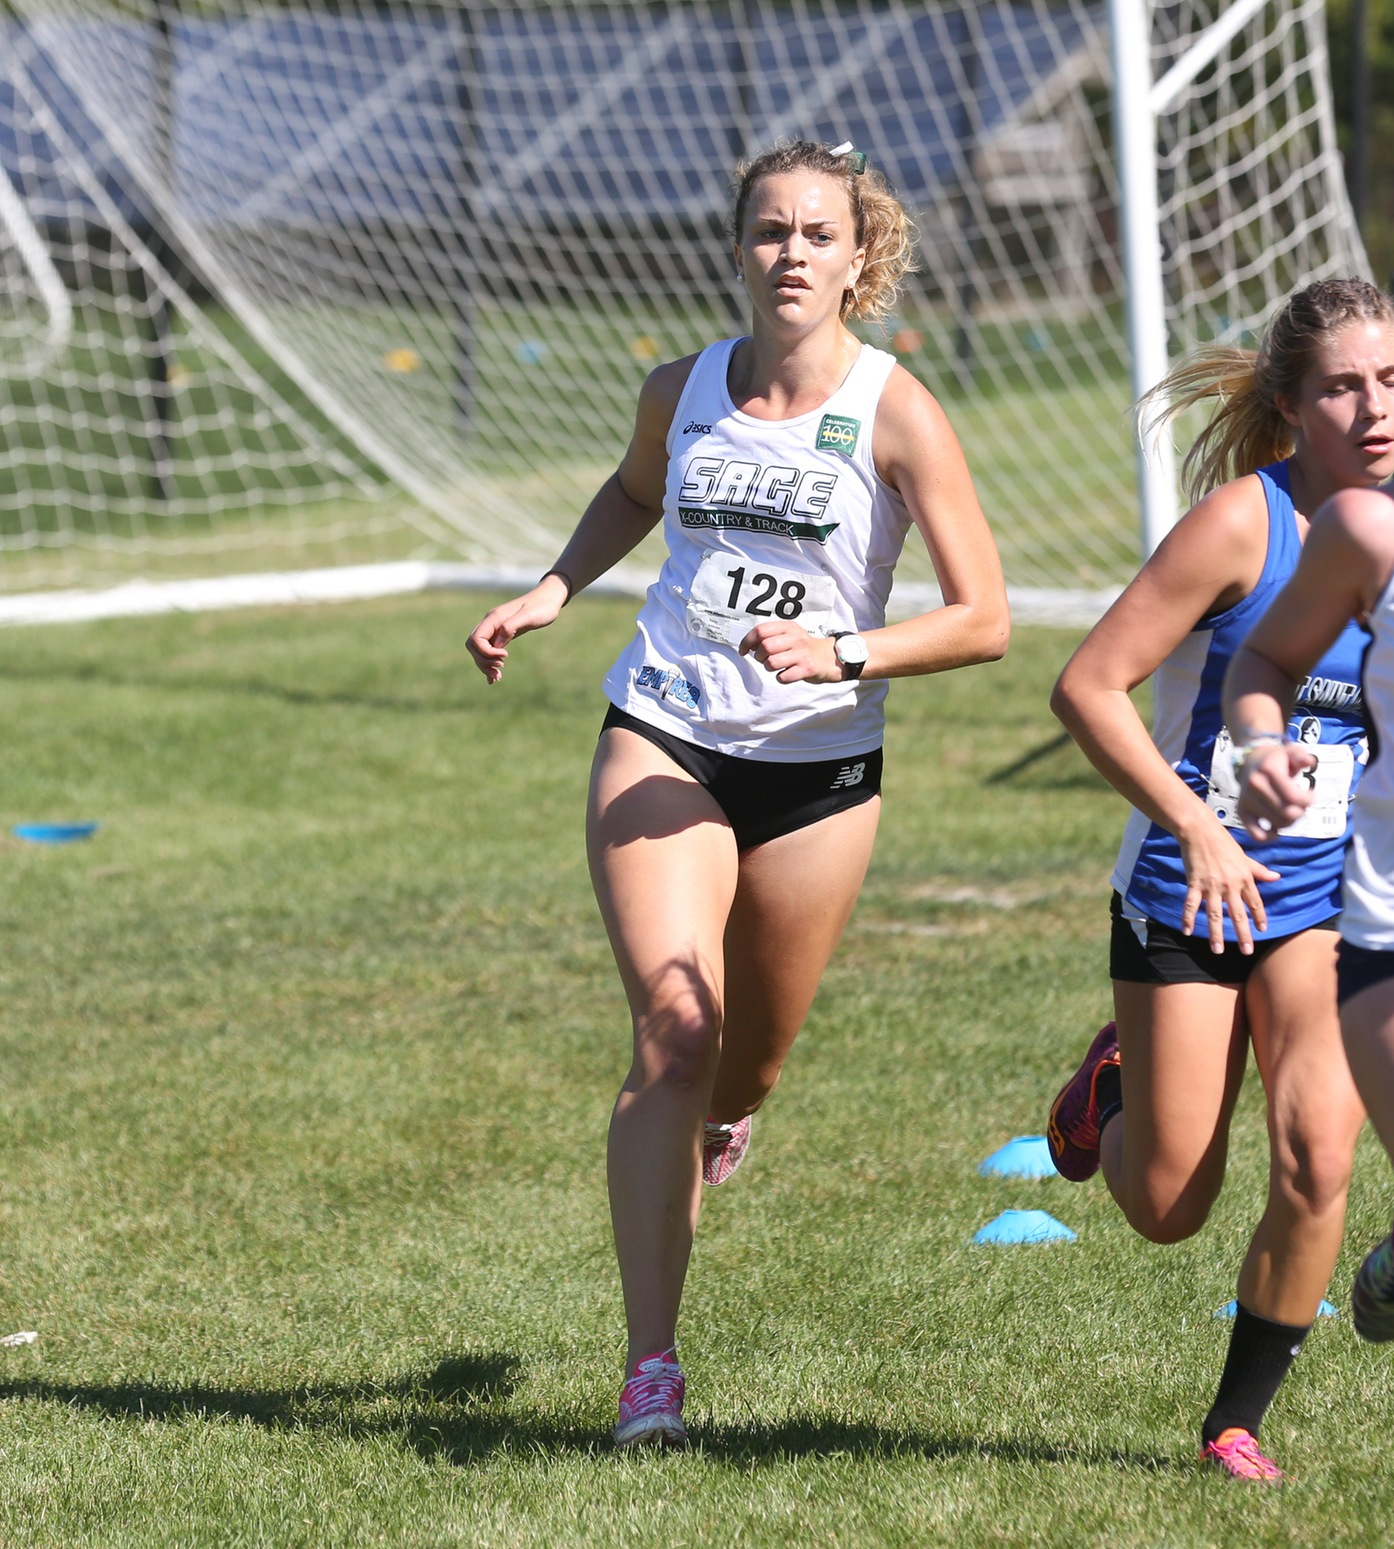 Sagan Leggett Leads Gators to a Sixth Place Finish at Bard Invitational